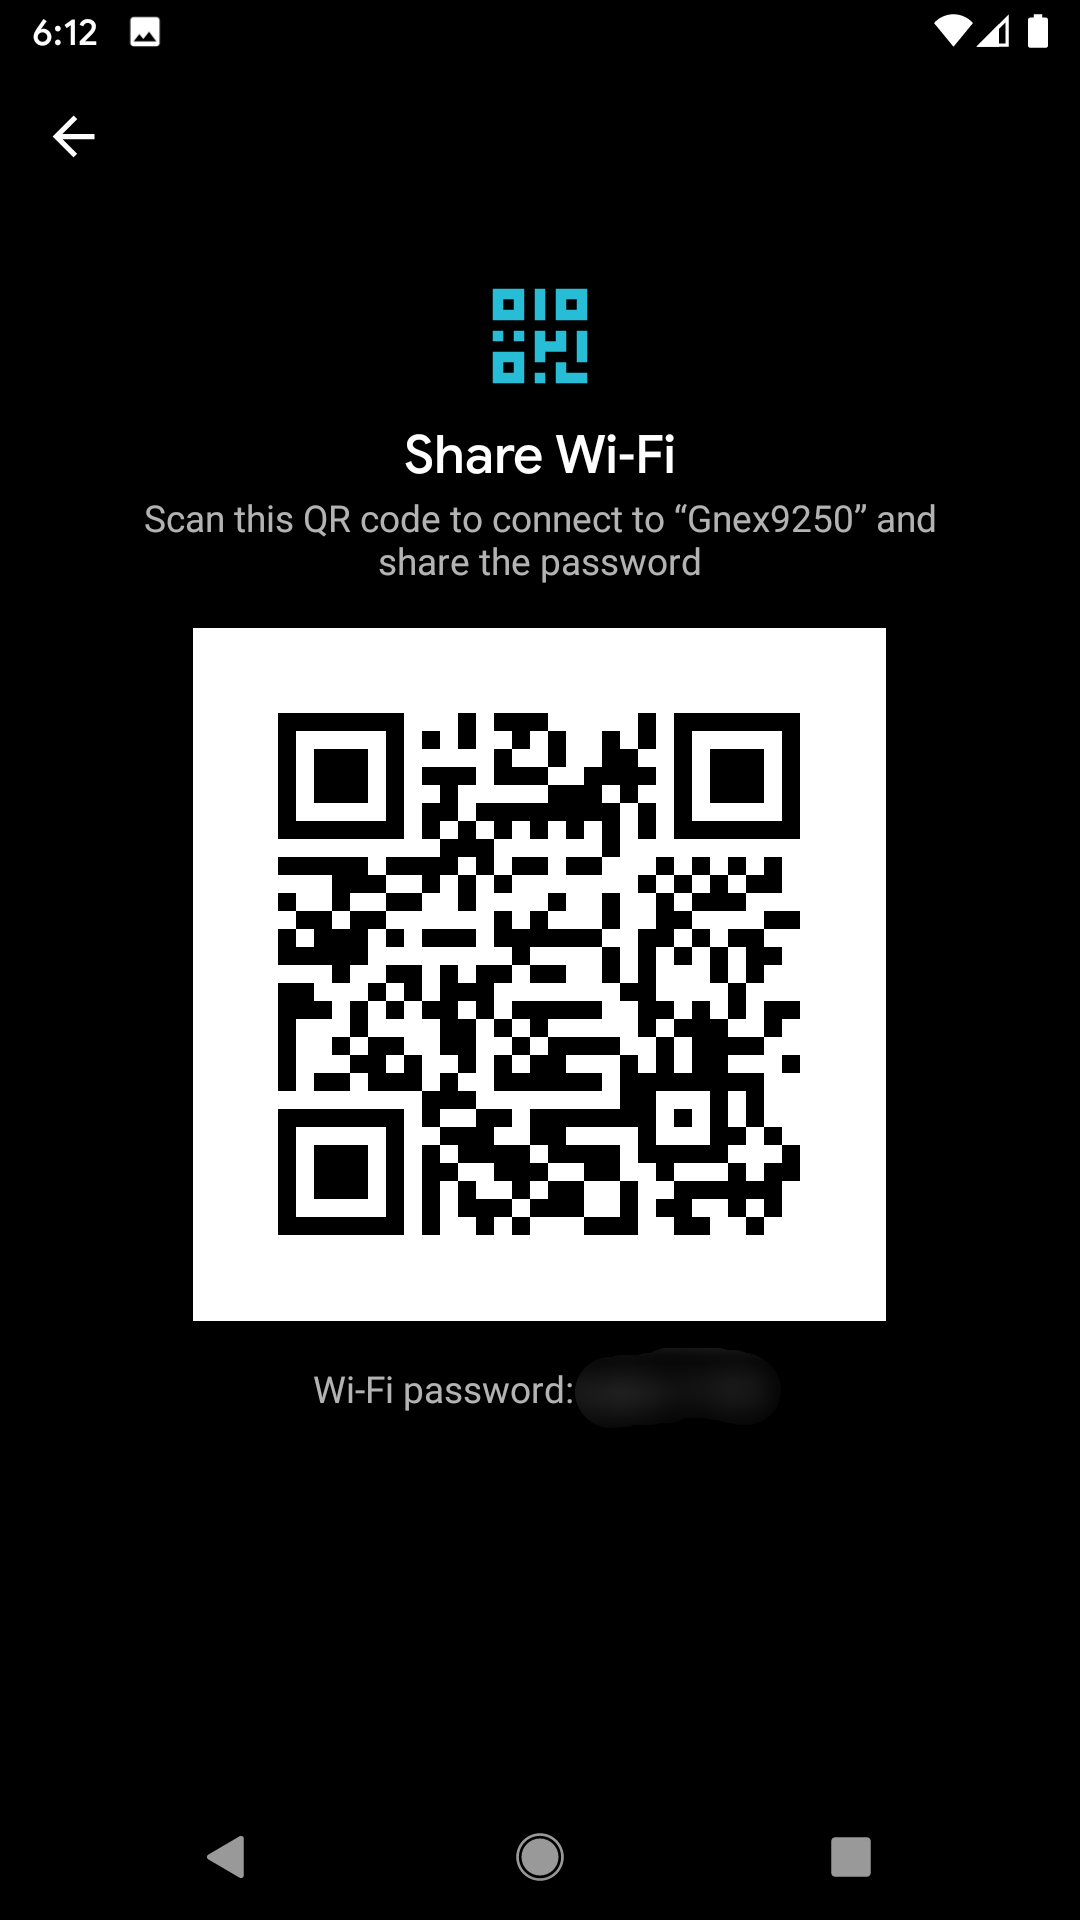 Android 10 Wi-Fi password sharing via QR code